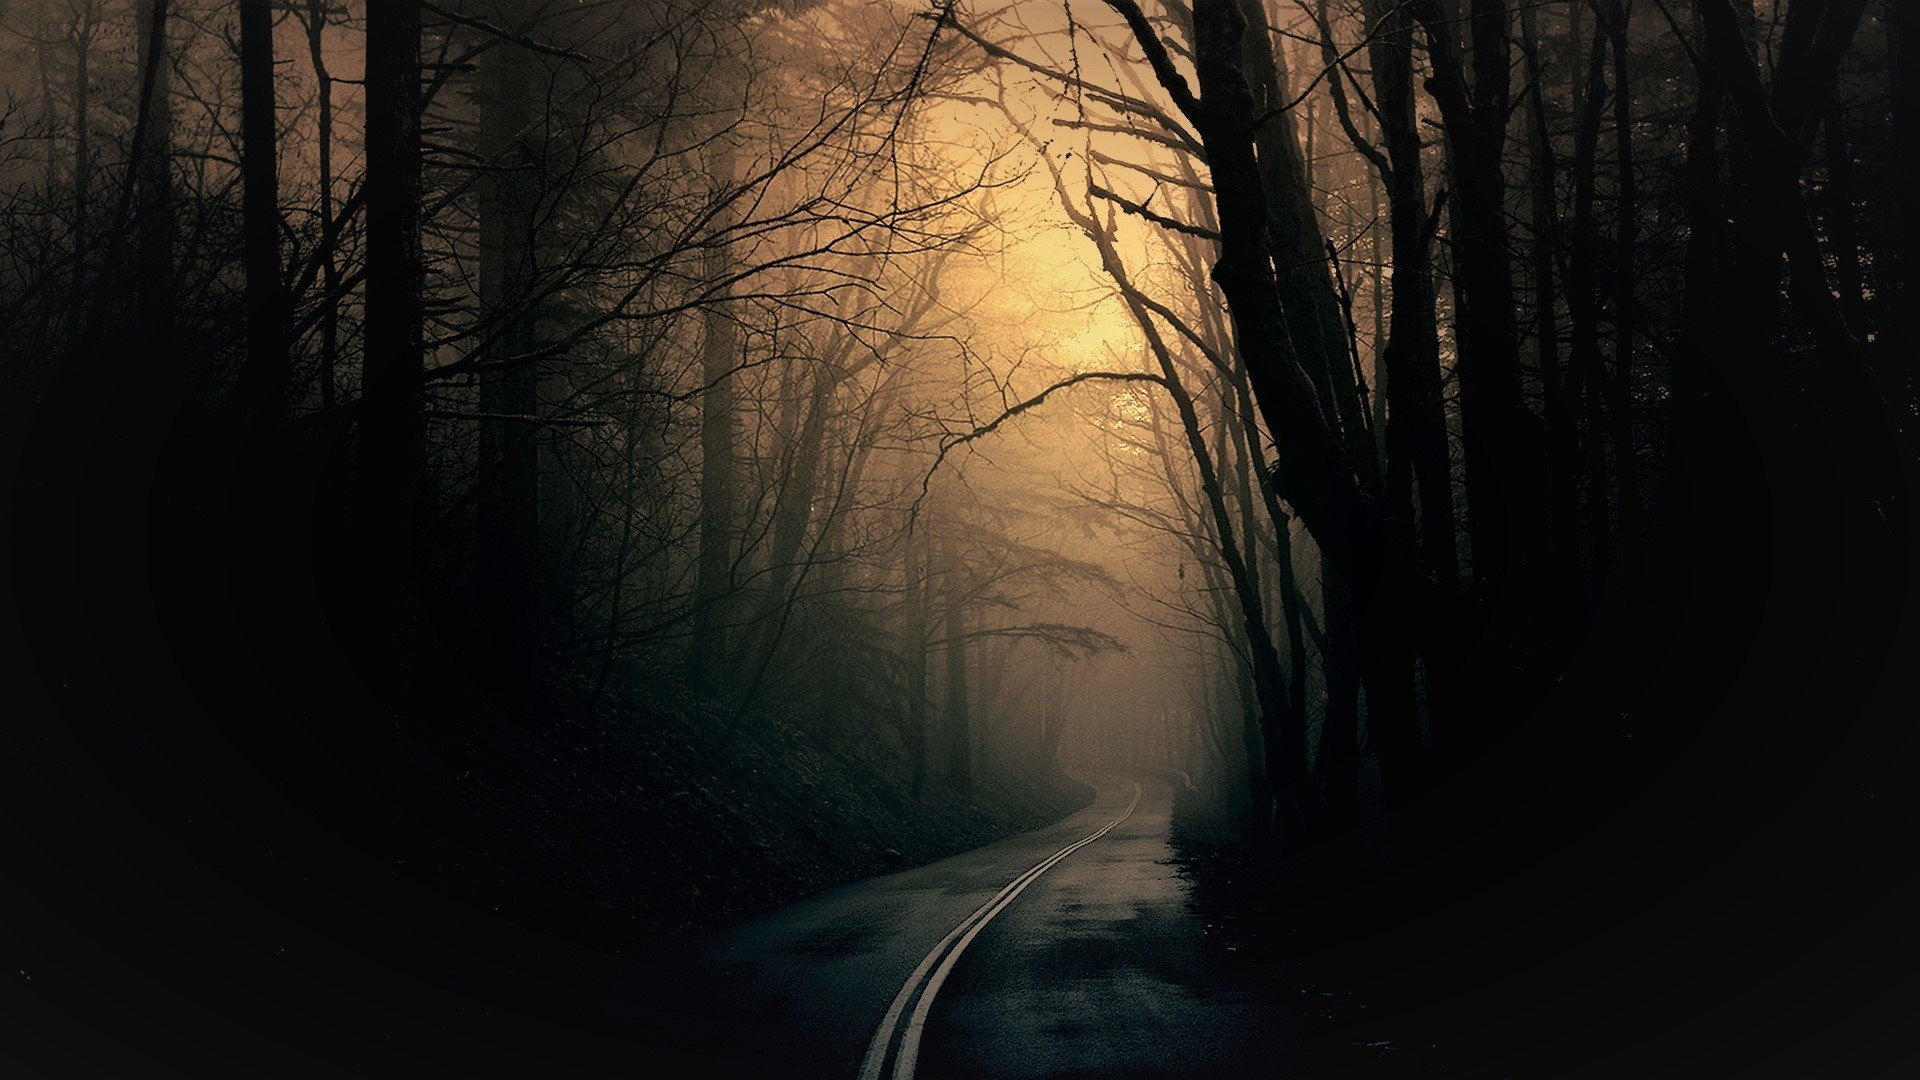 Dark Forest Road Full HD Wallpaper And Background Image